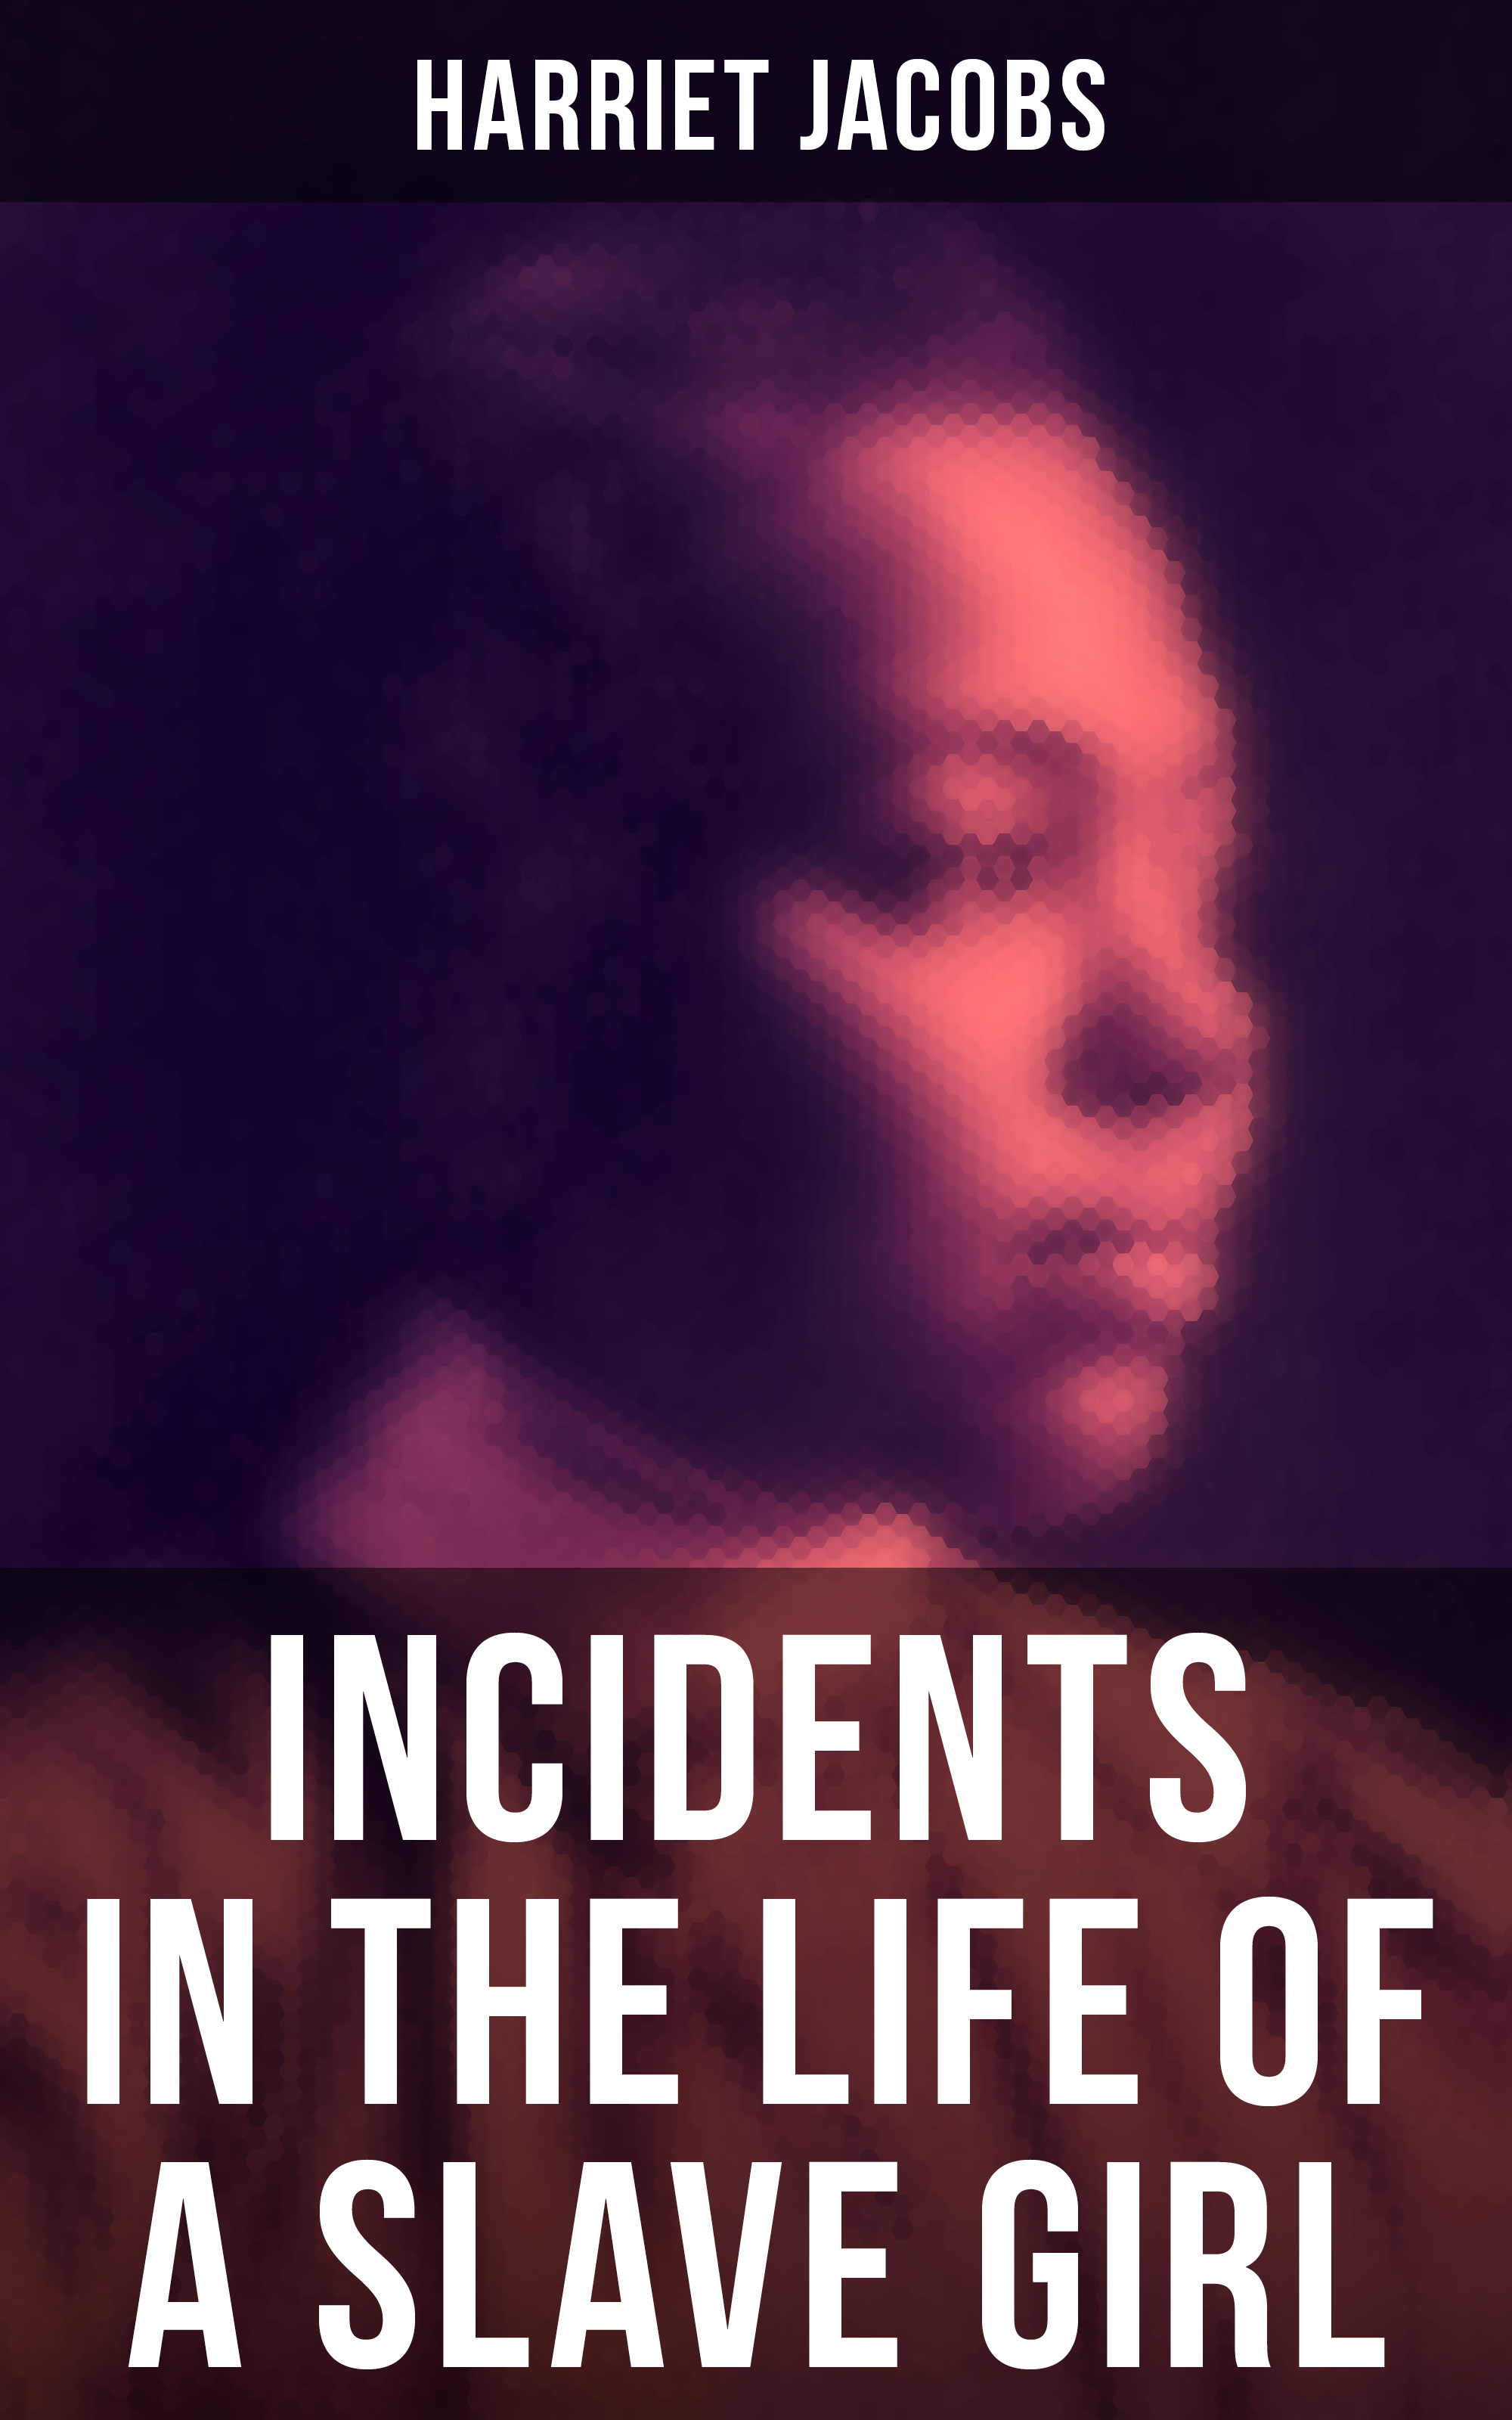 Harriet Jacobs Harriet Jacobs: Incidents in the Life of a Slave Girl